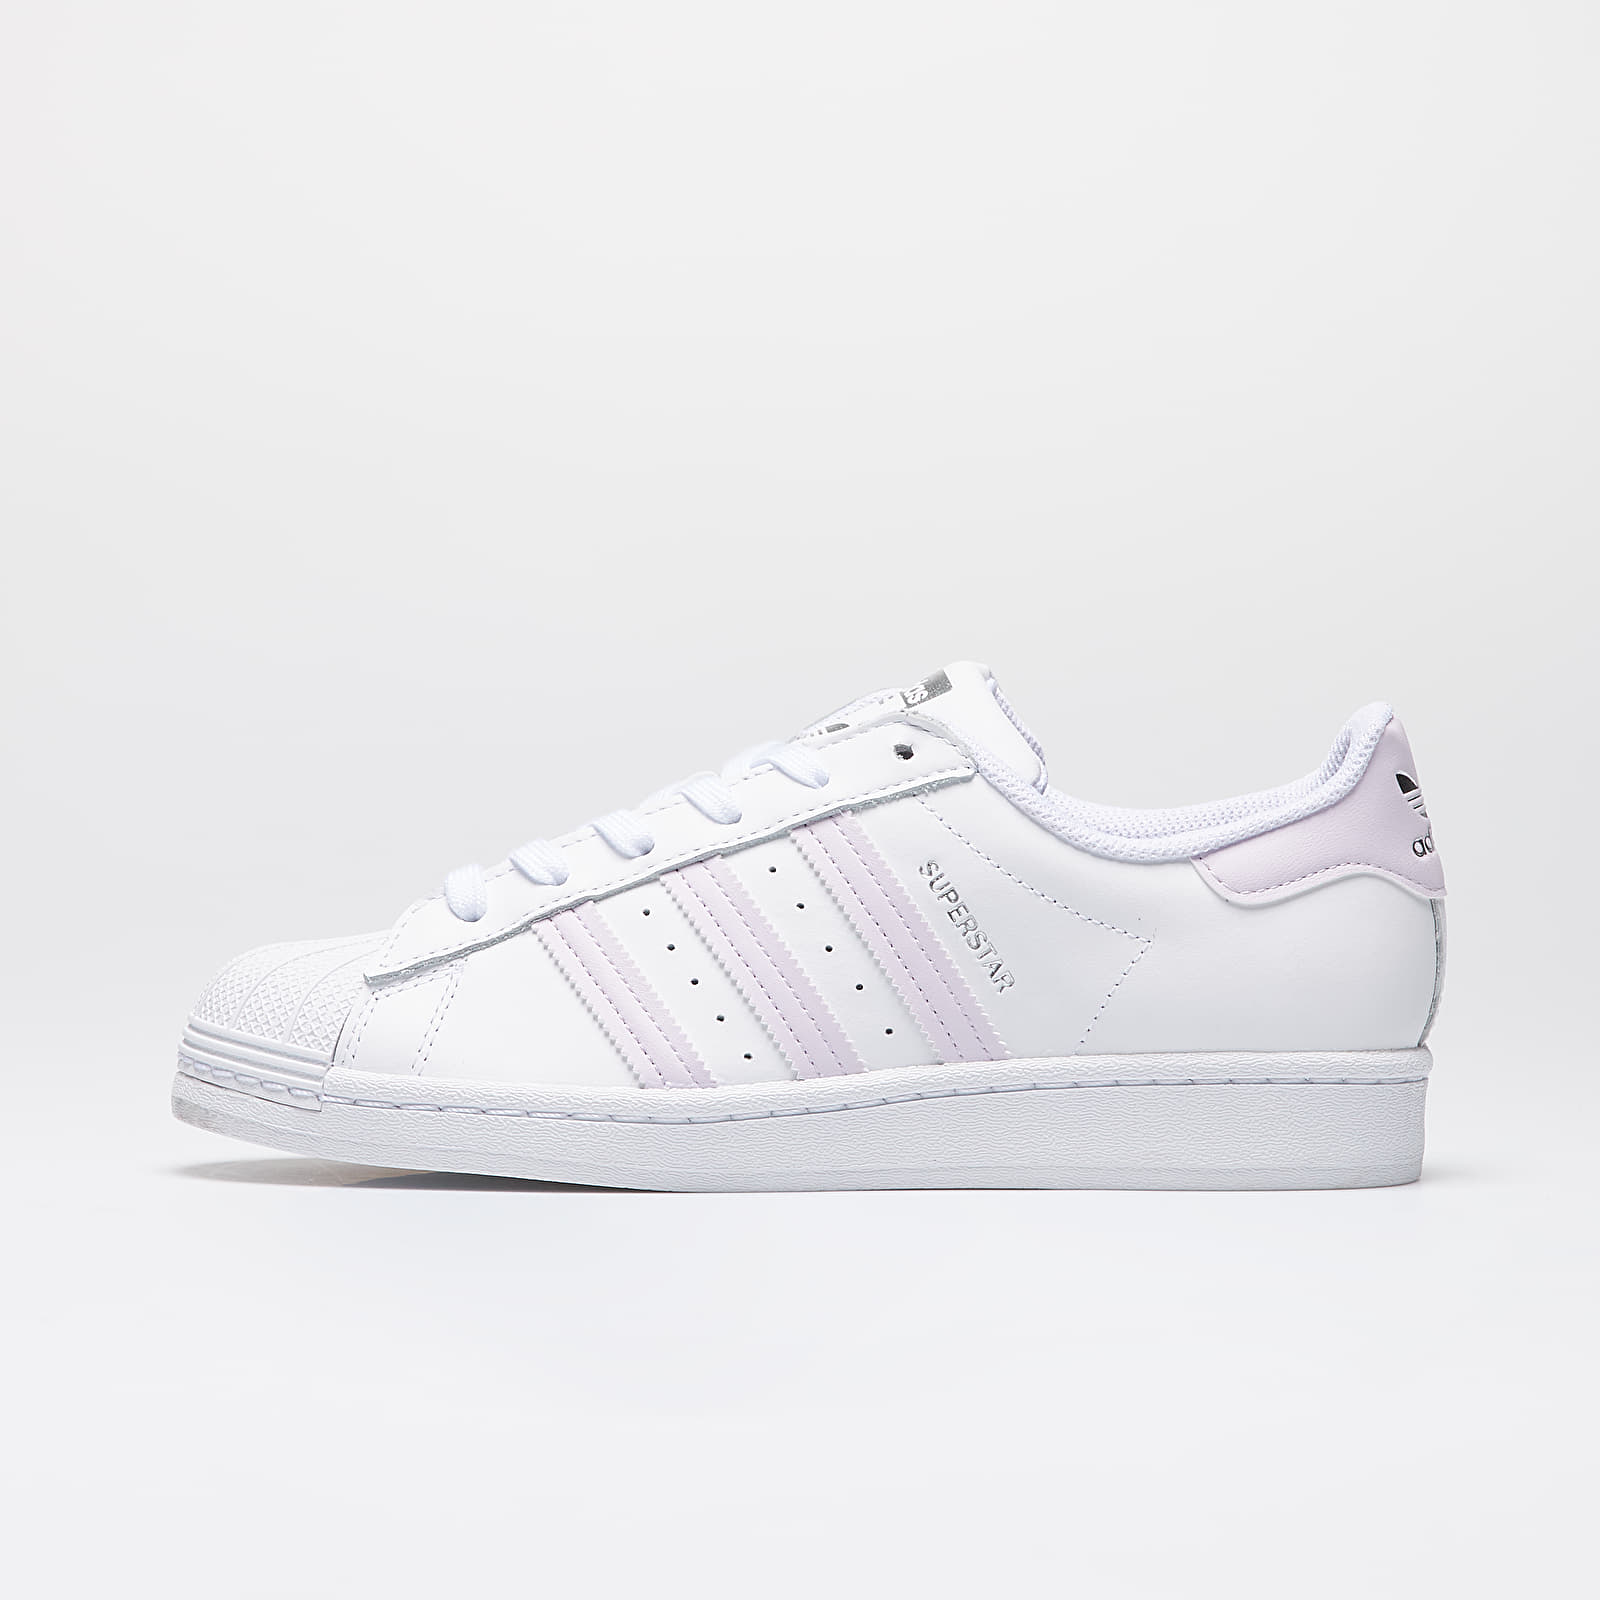 Női cipők adidas Superstar W Ftw White/ Purple Tint/ Silver Metalic